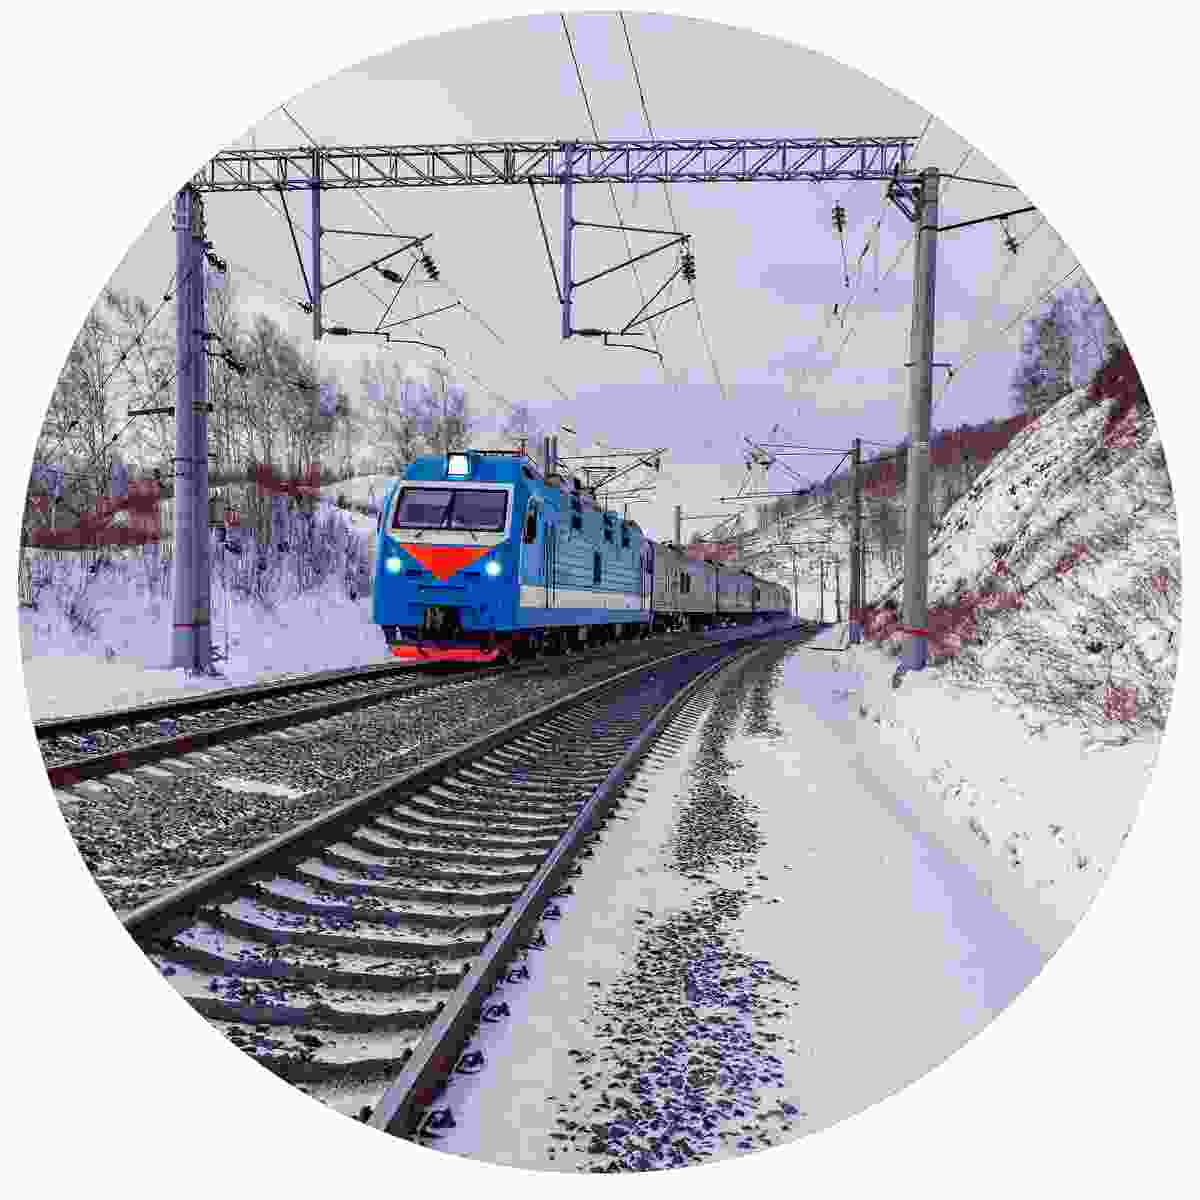 The Trans-Siberian railway in winter (Shutterstock)